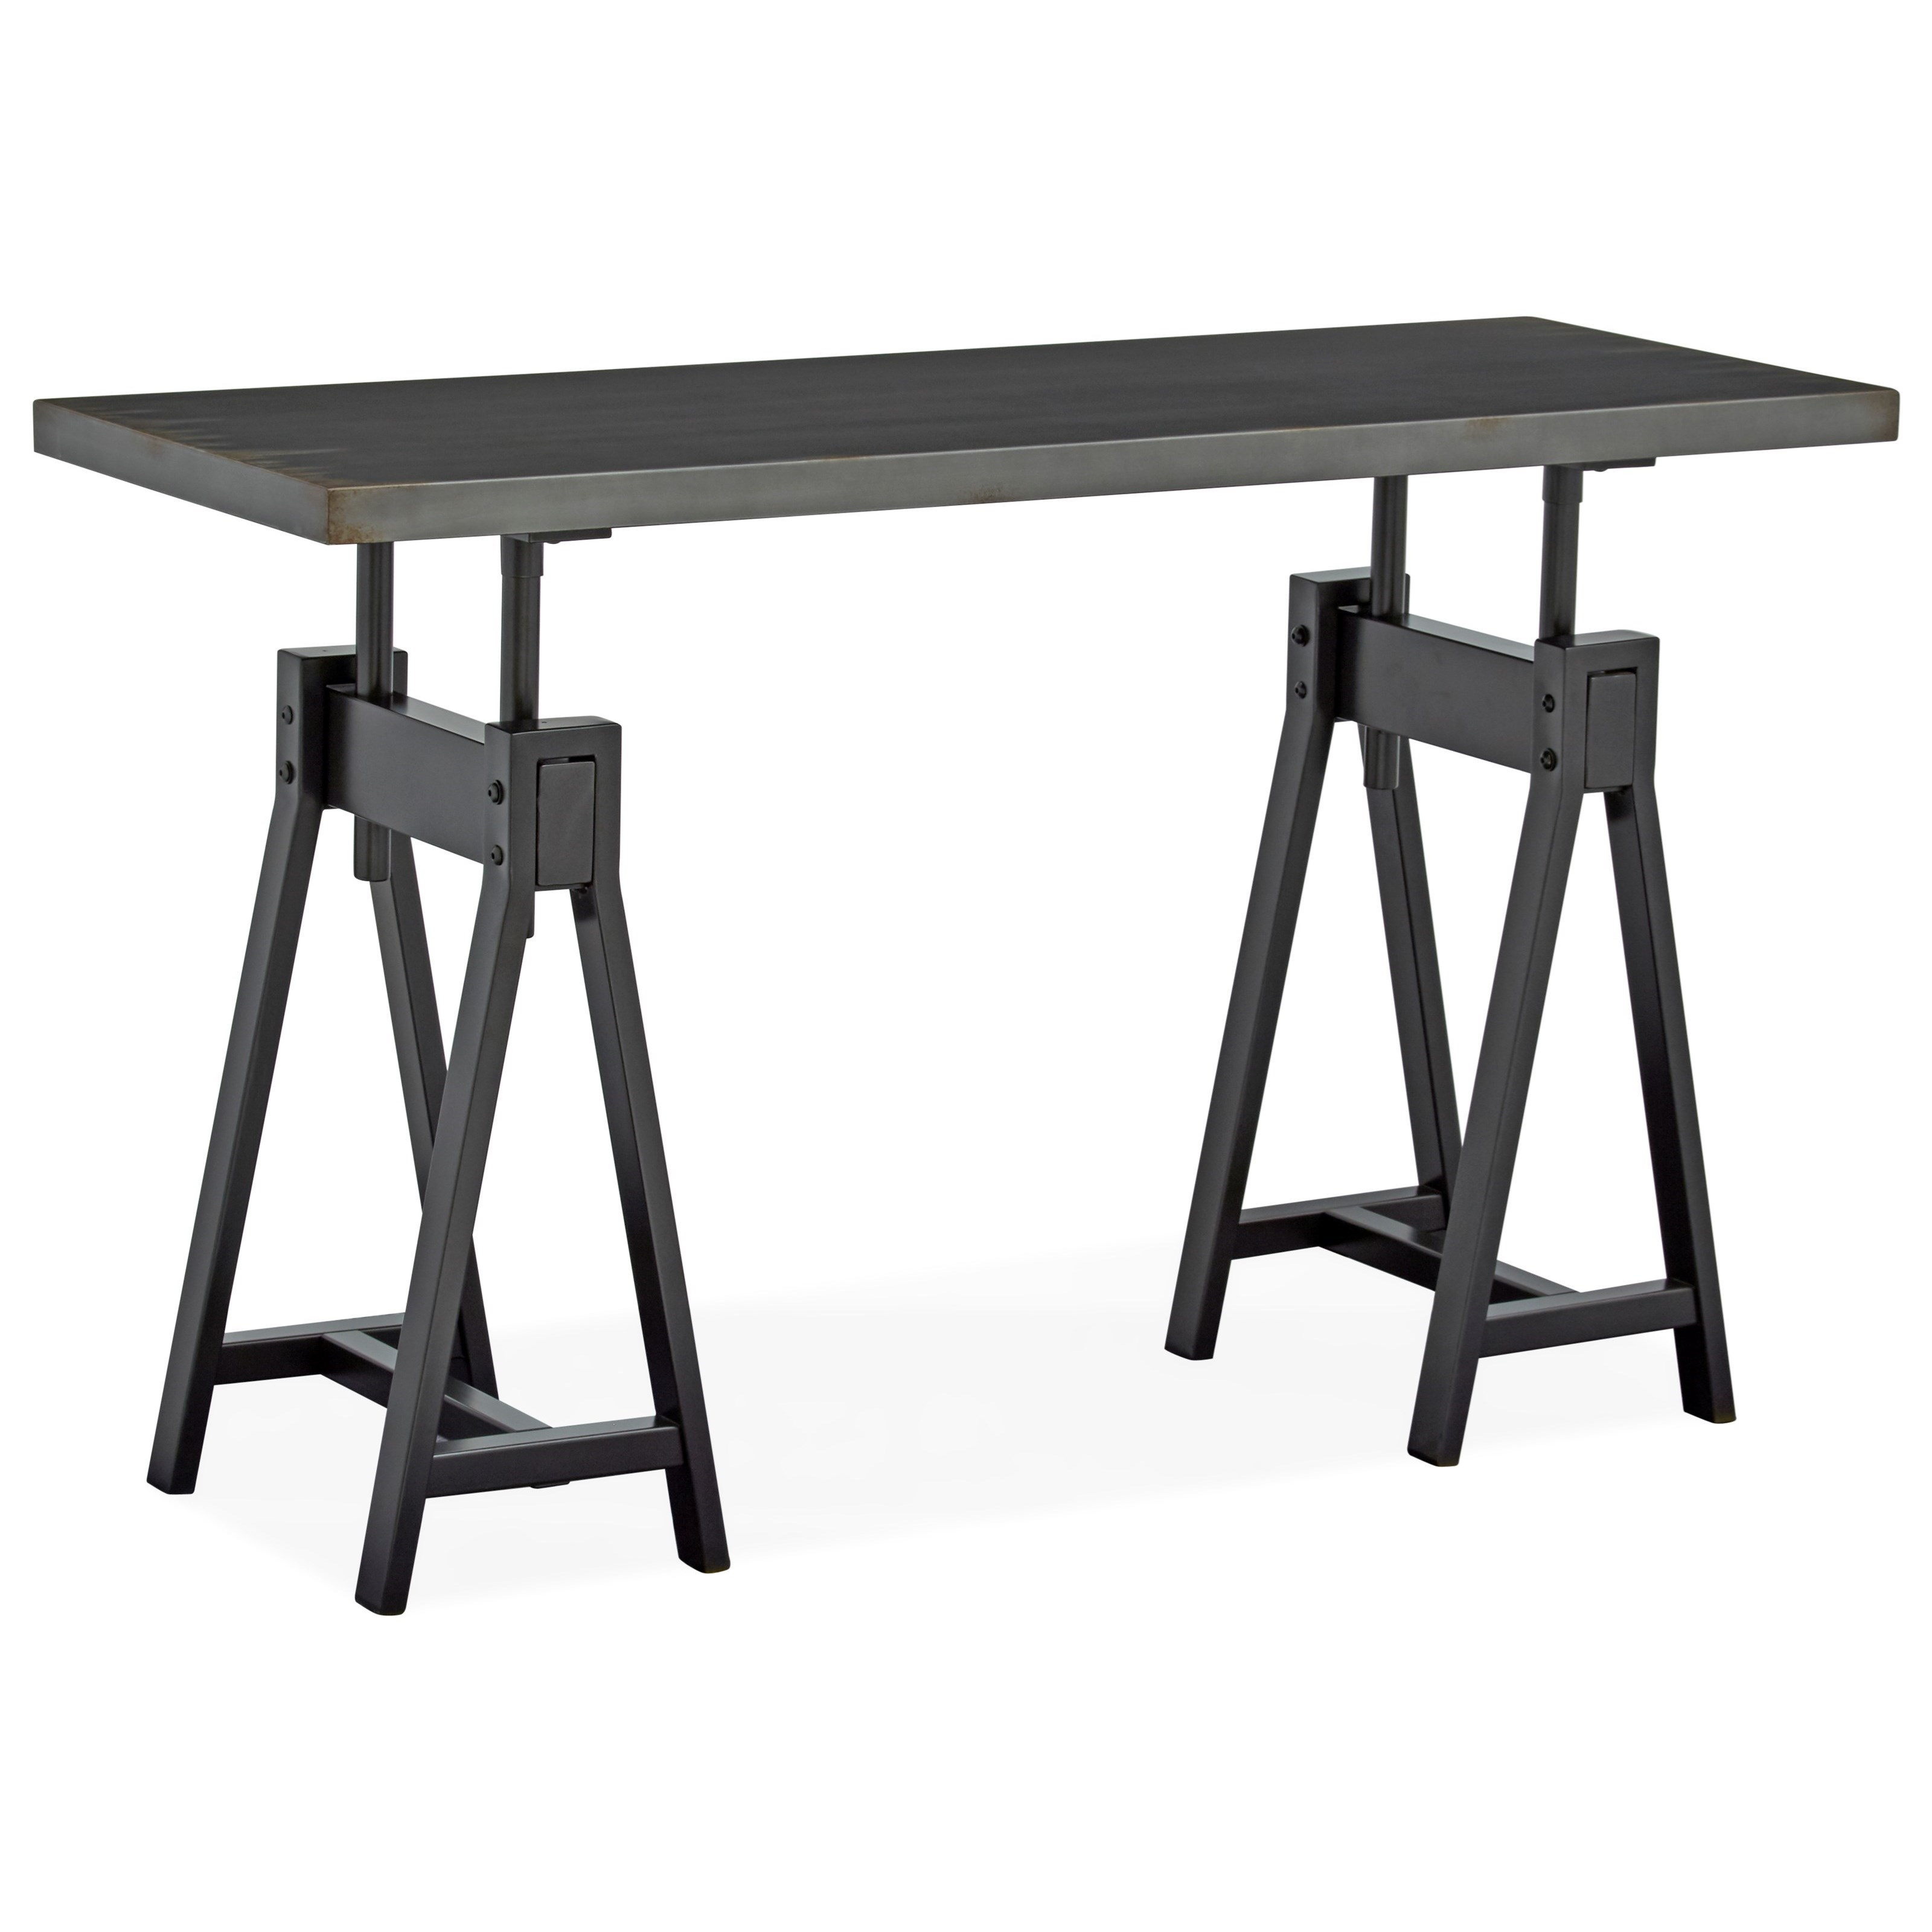 Hartley Sofa Table by Magnussen Home at Baer's Furniture